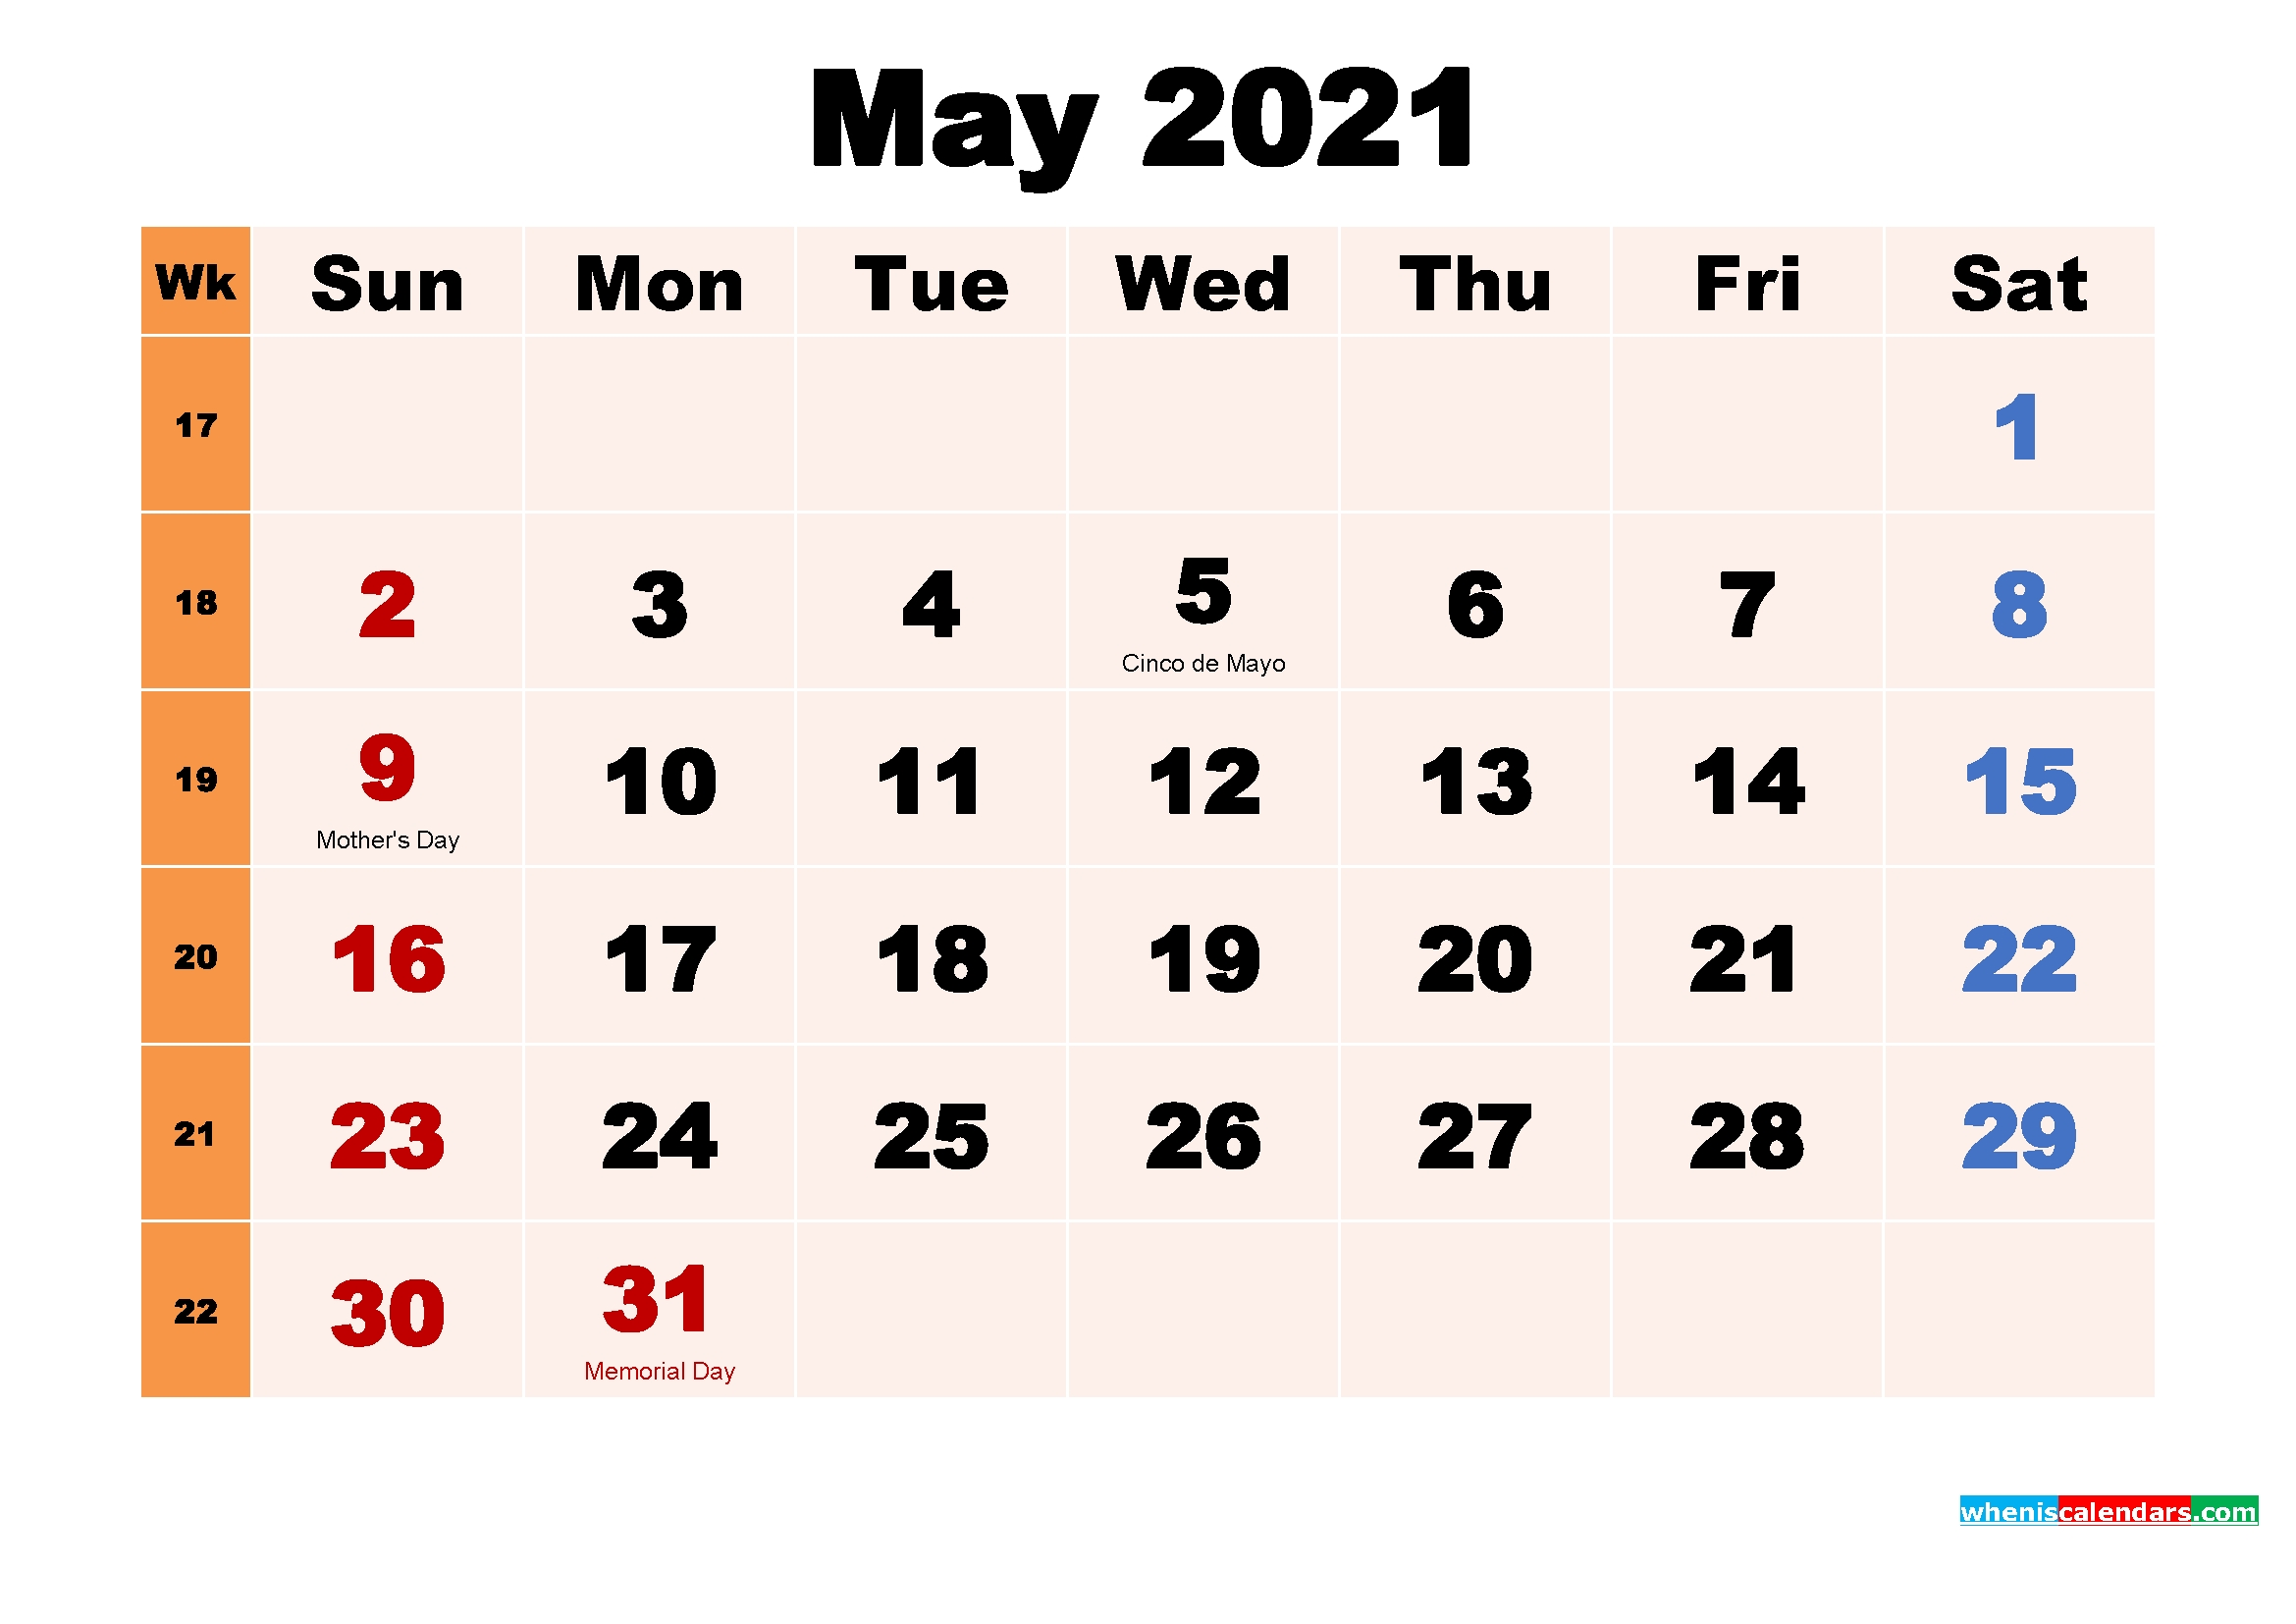 Simple::may 2021 calendar with holidays